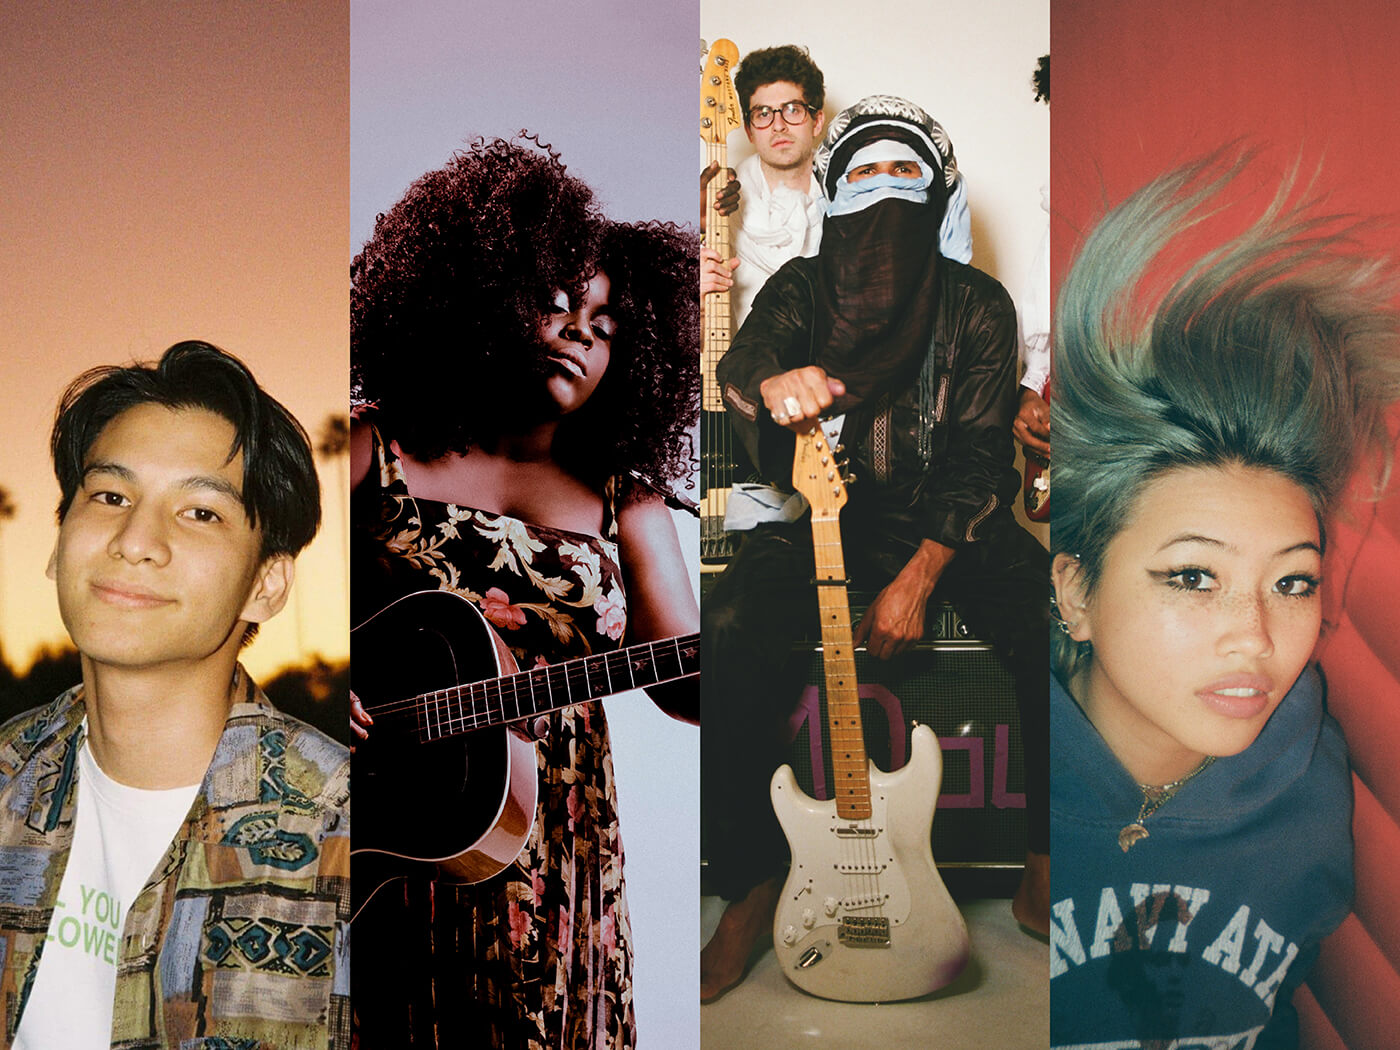 Meet the 25 rising guitarists that Fender is championing this year - Guitar.com | All Things Guitar